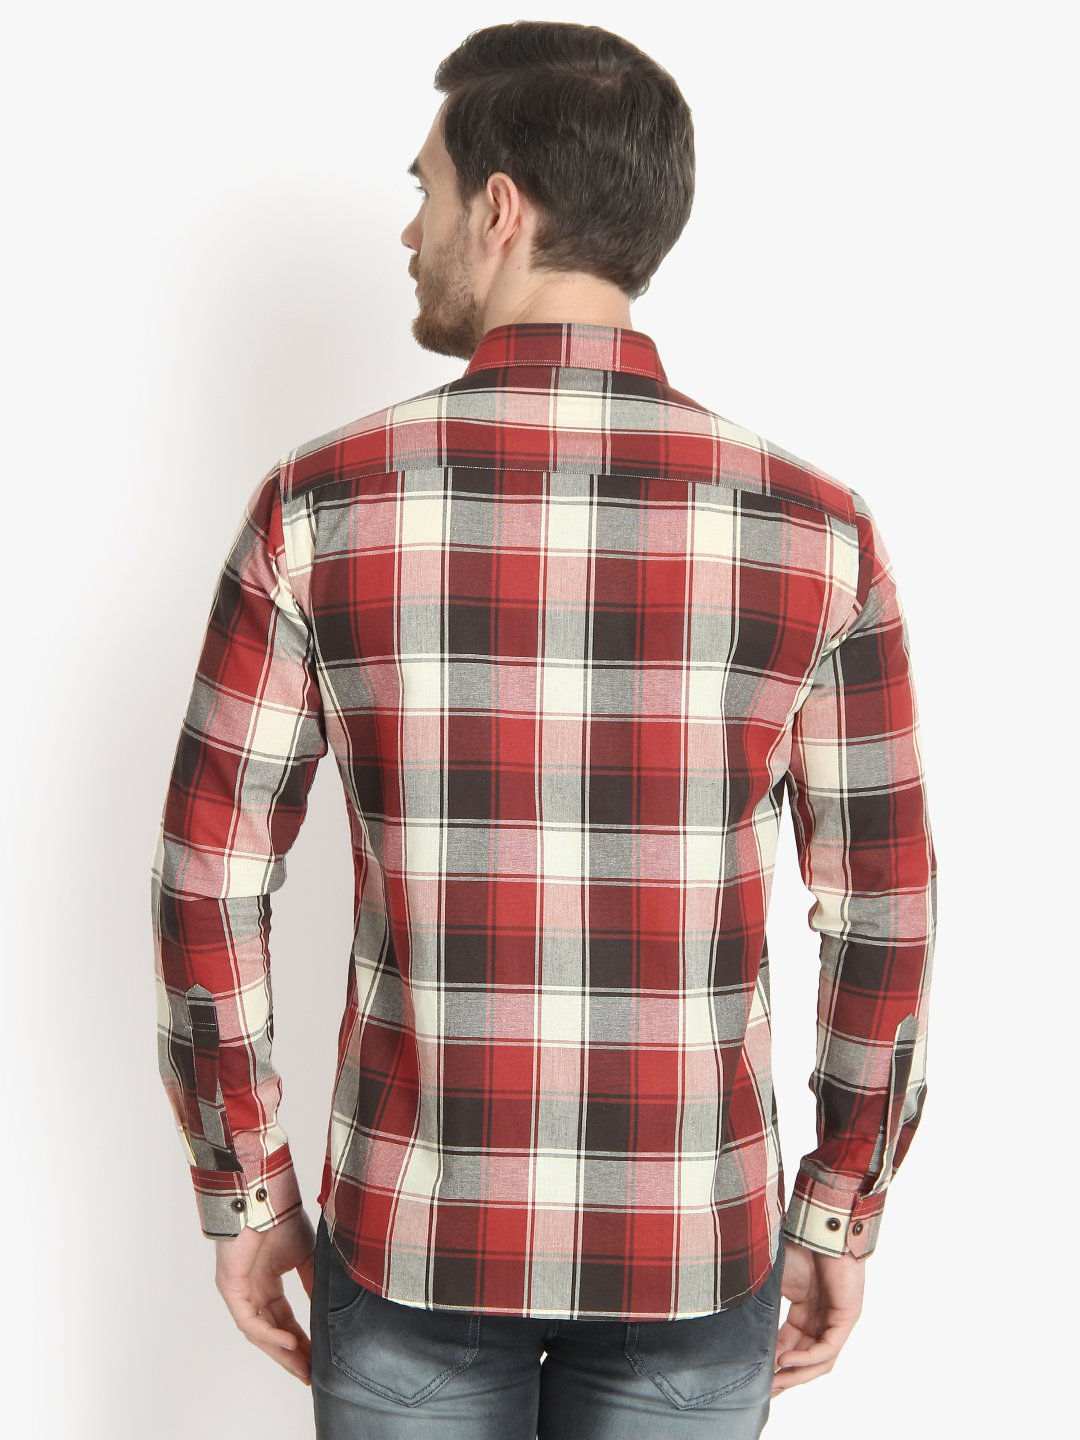 Men's Casual Check Cotton Shirt Code-1026